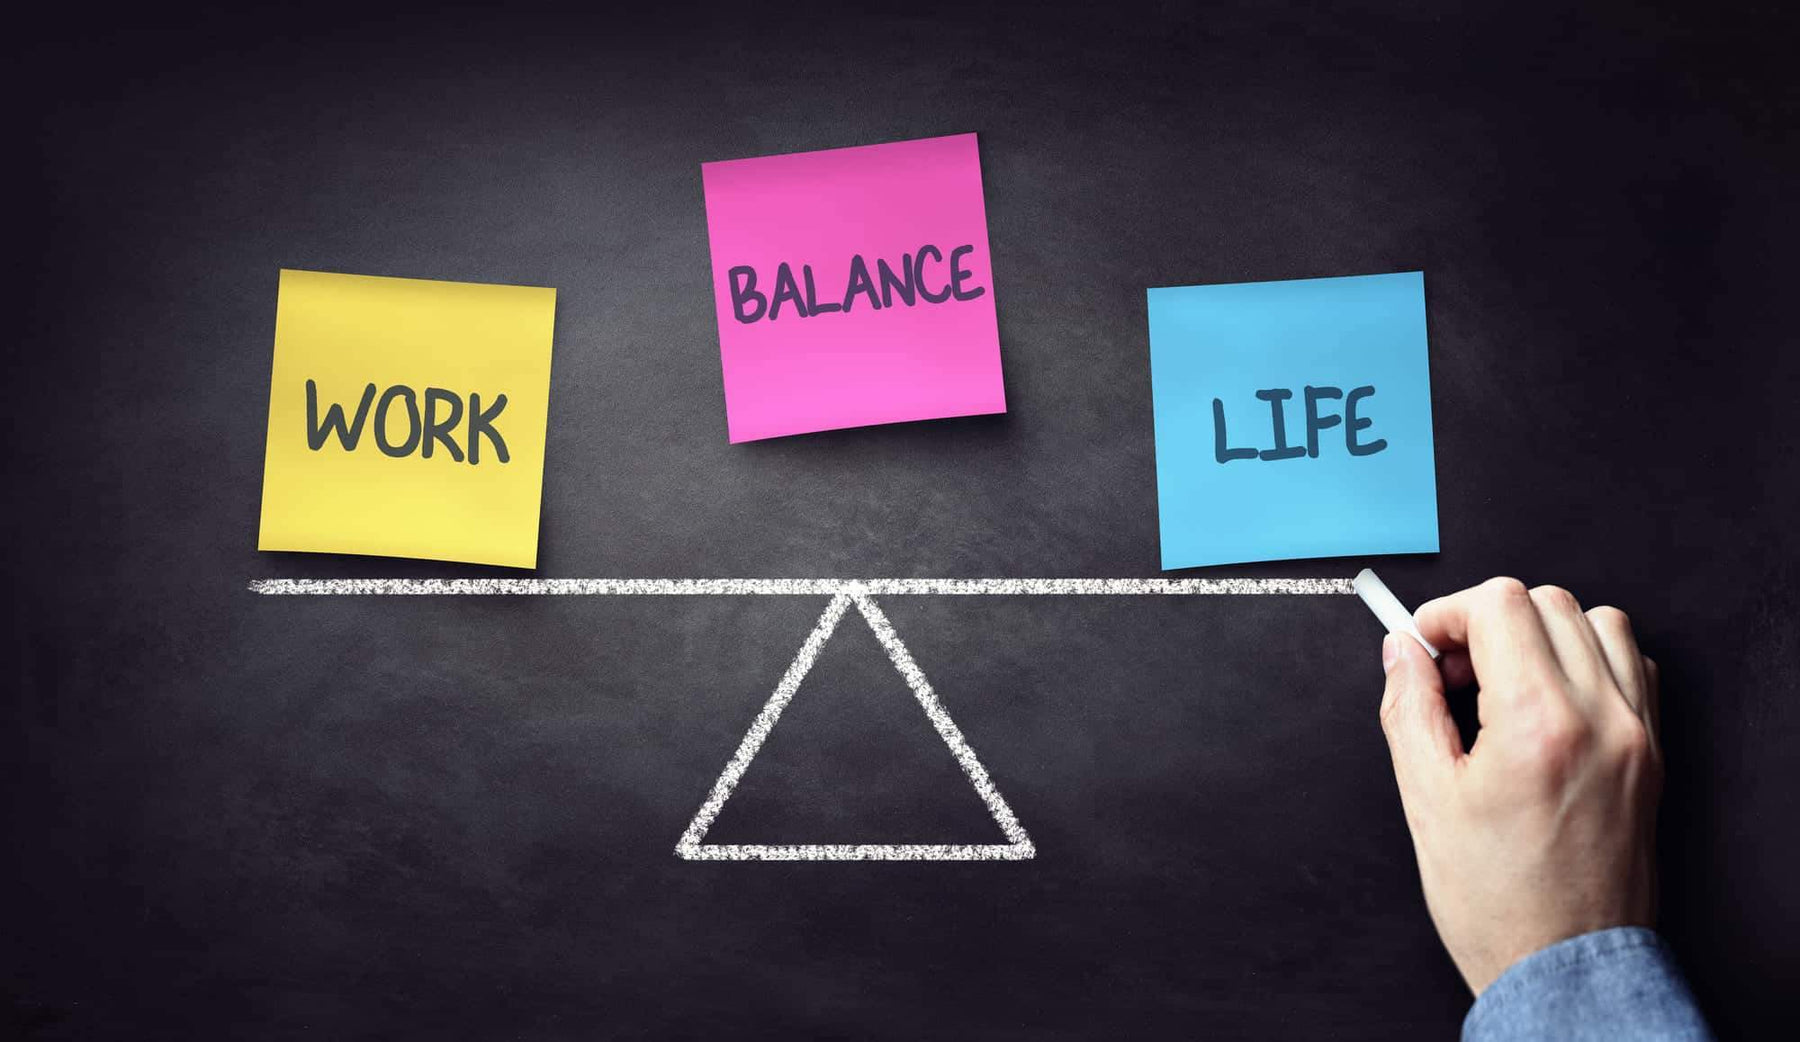 Achieving Work-Life Balance Using Digital Signage